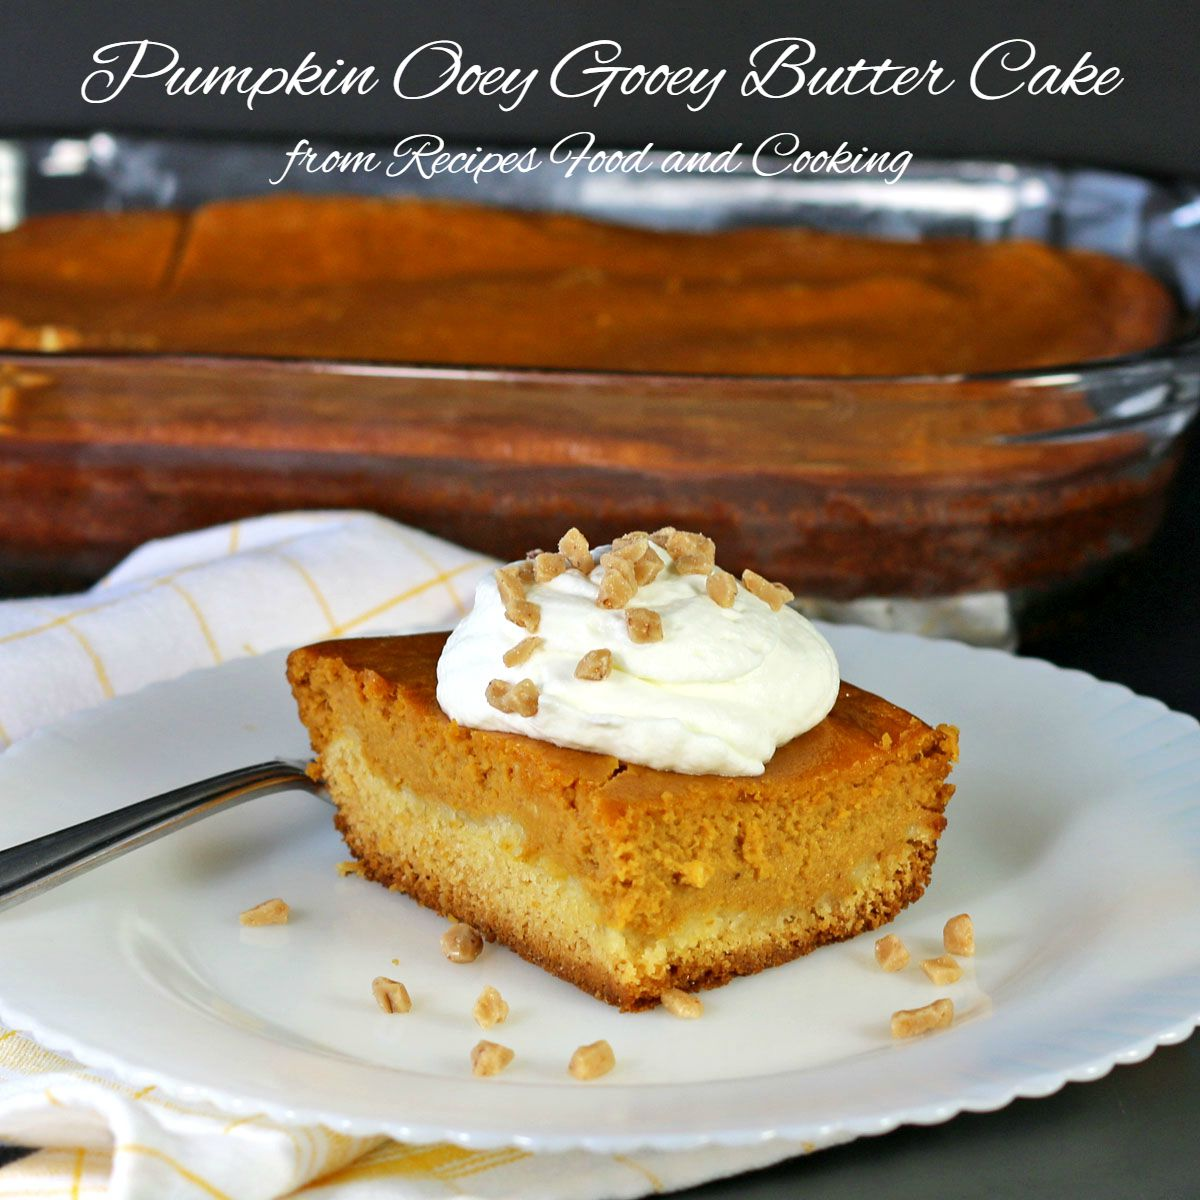 Does Gooey Butter Cake Need Refrigerated